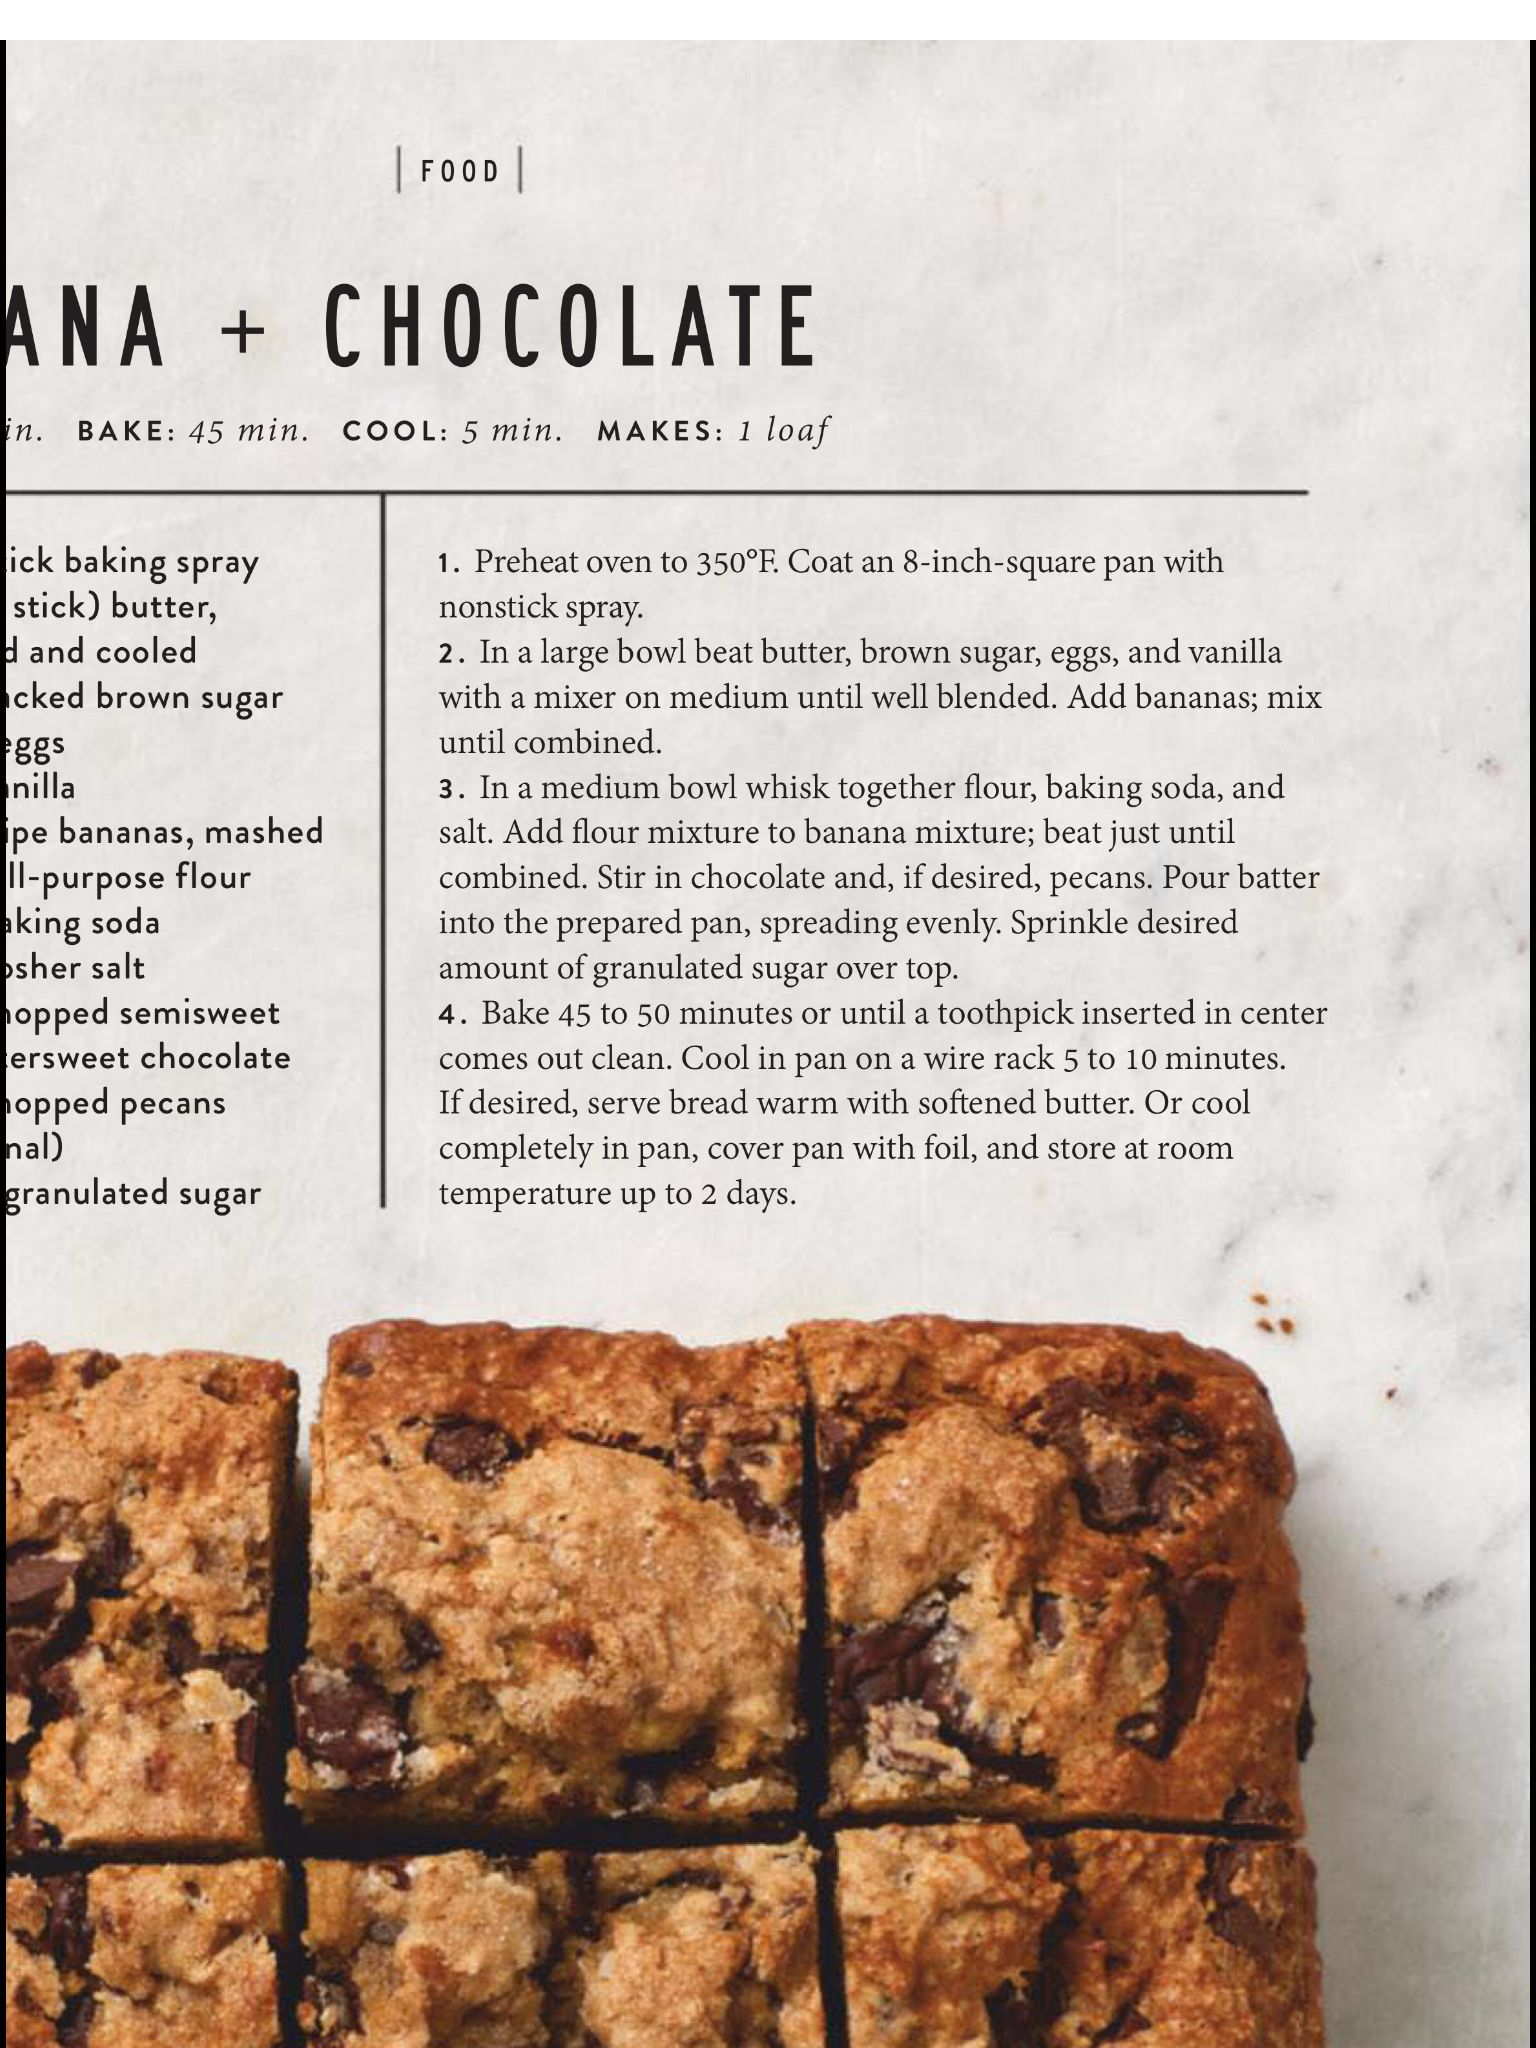 Quick Breads From The Magnolia Journal Spring 2019 Read It On The Texture App Unlimited Access To 200 Top Magazines Stick Of Butter Quick Bread Food